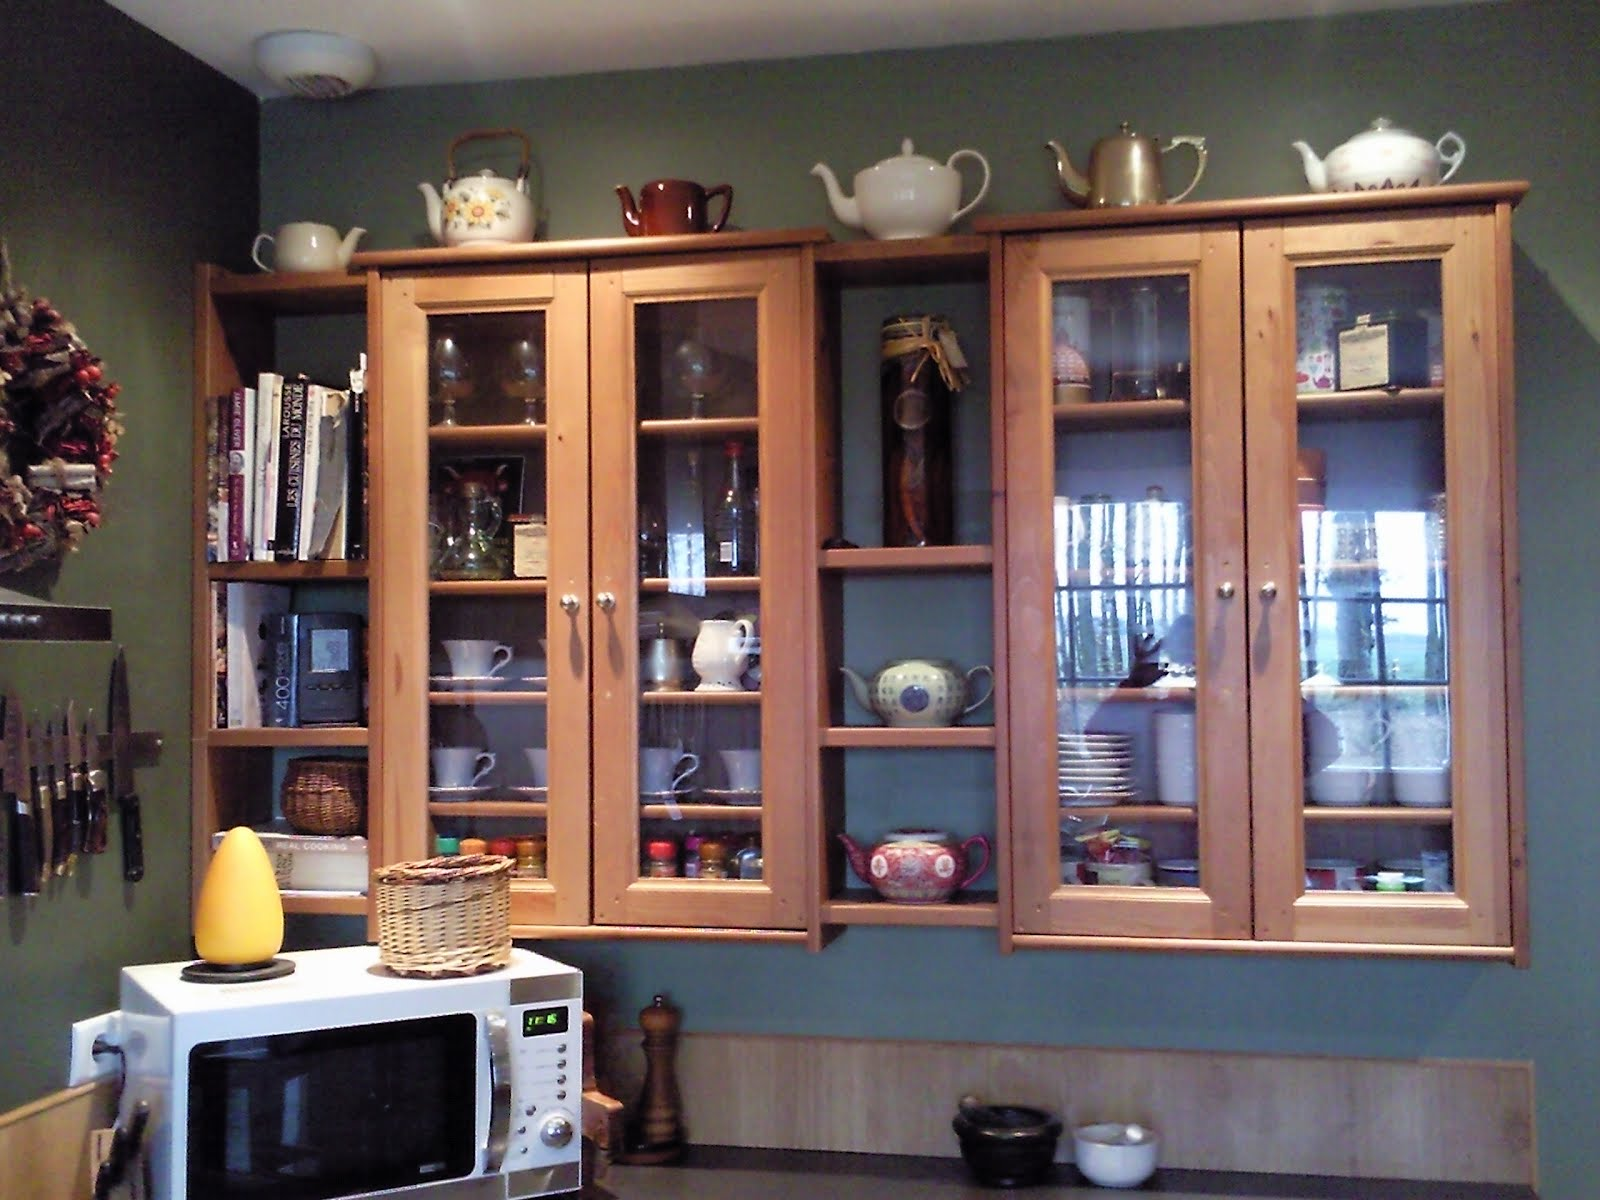 leksvik pine cd cabinets and ikea pine shelves kitchen cabinets pine cabinets kitchen Sorry about the mess in the kitchen I m not looking for a design award just sharing an idea